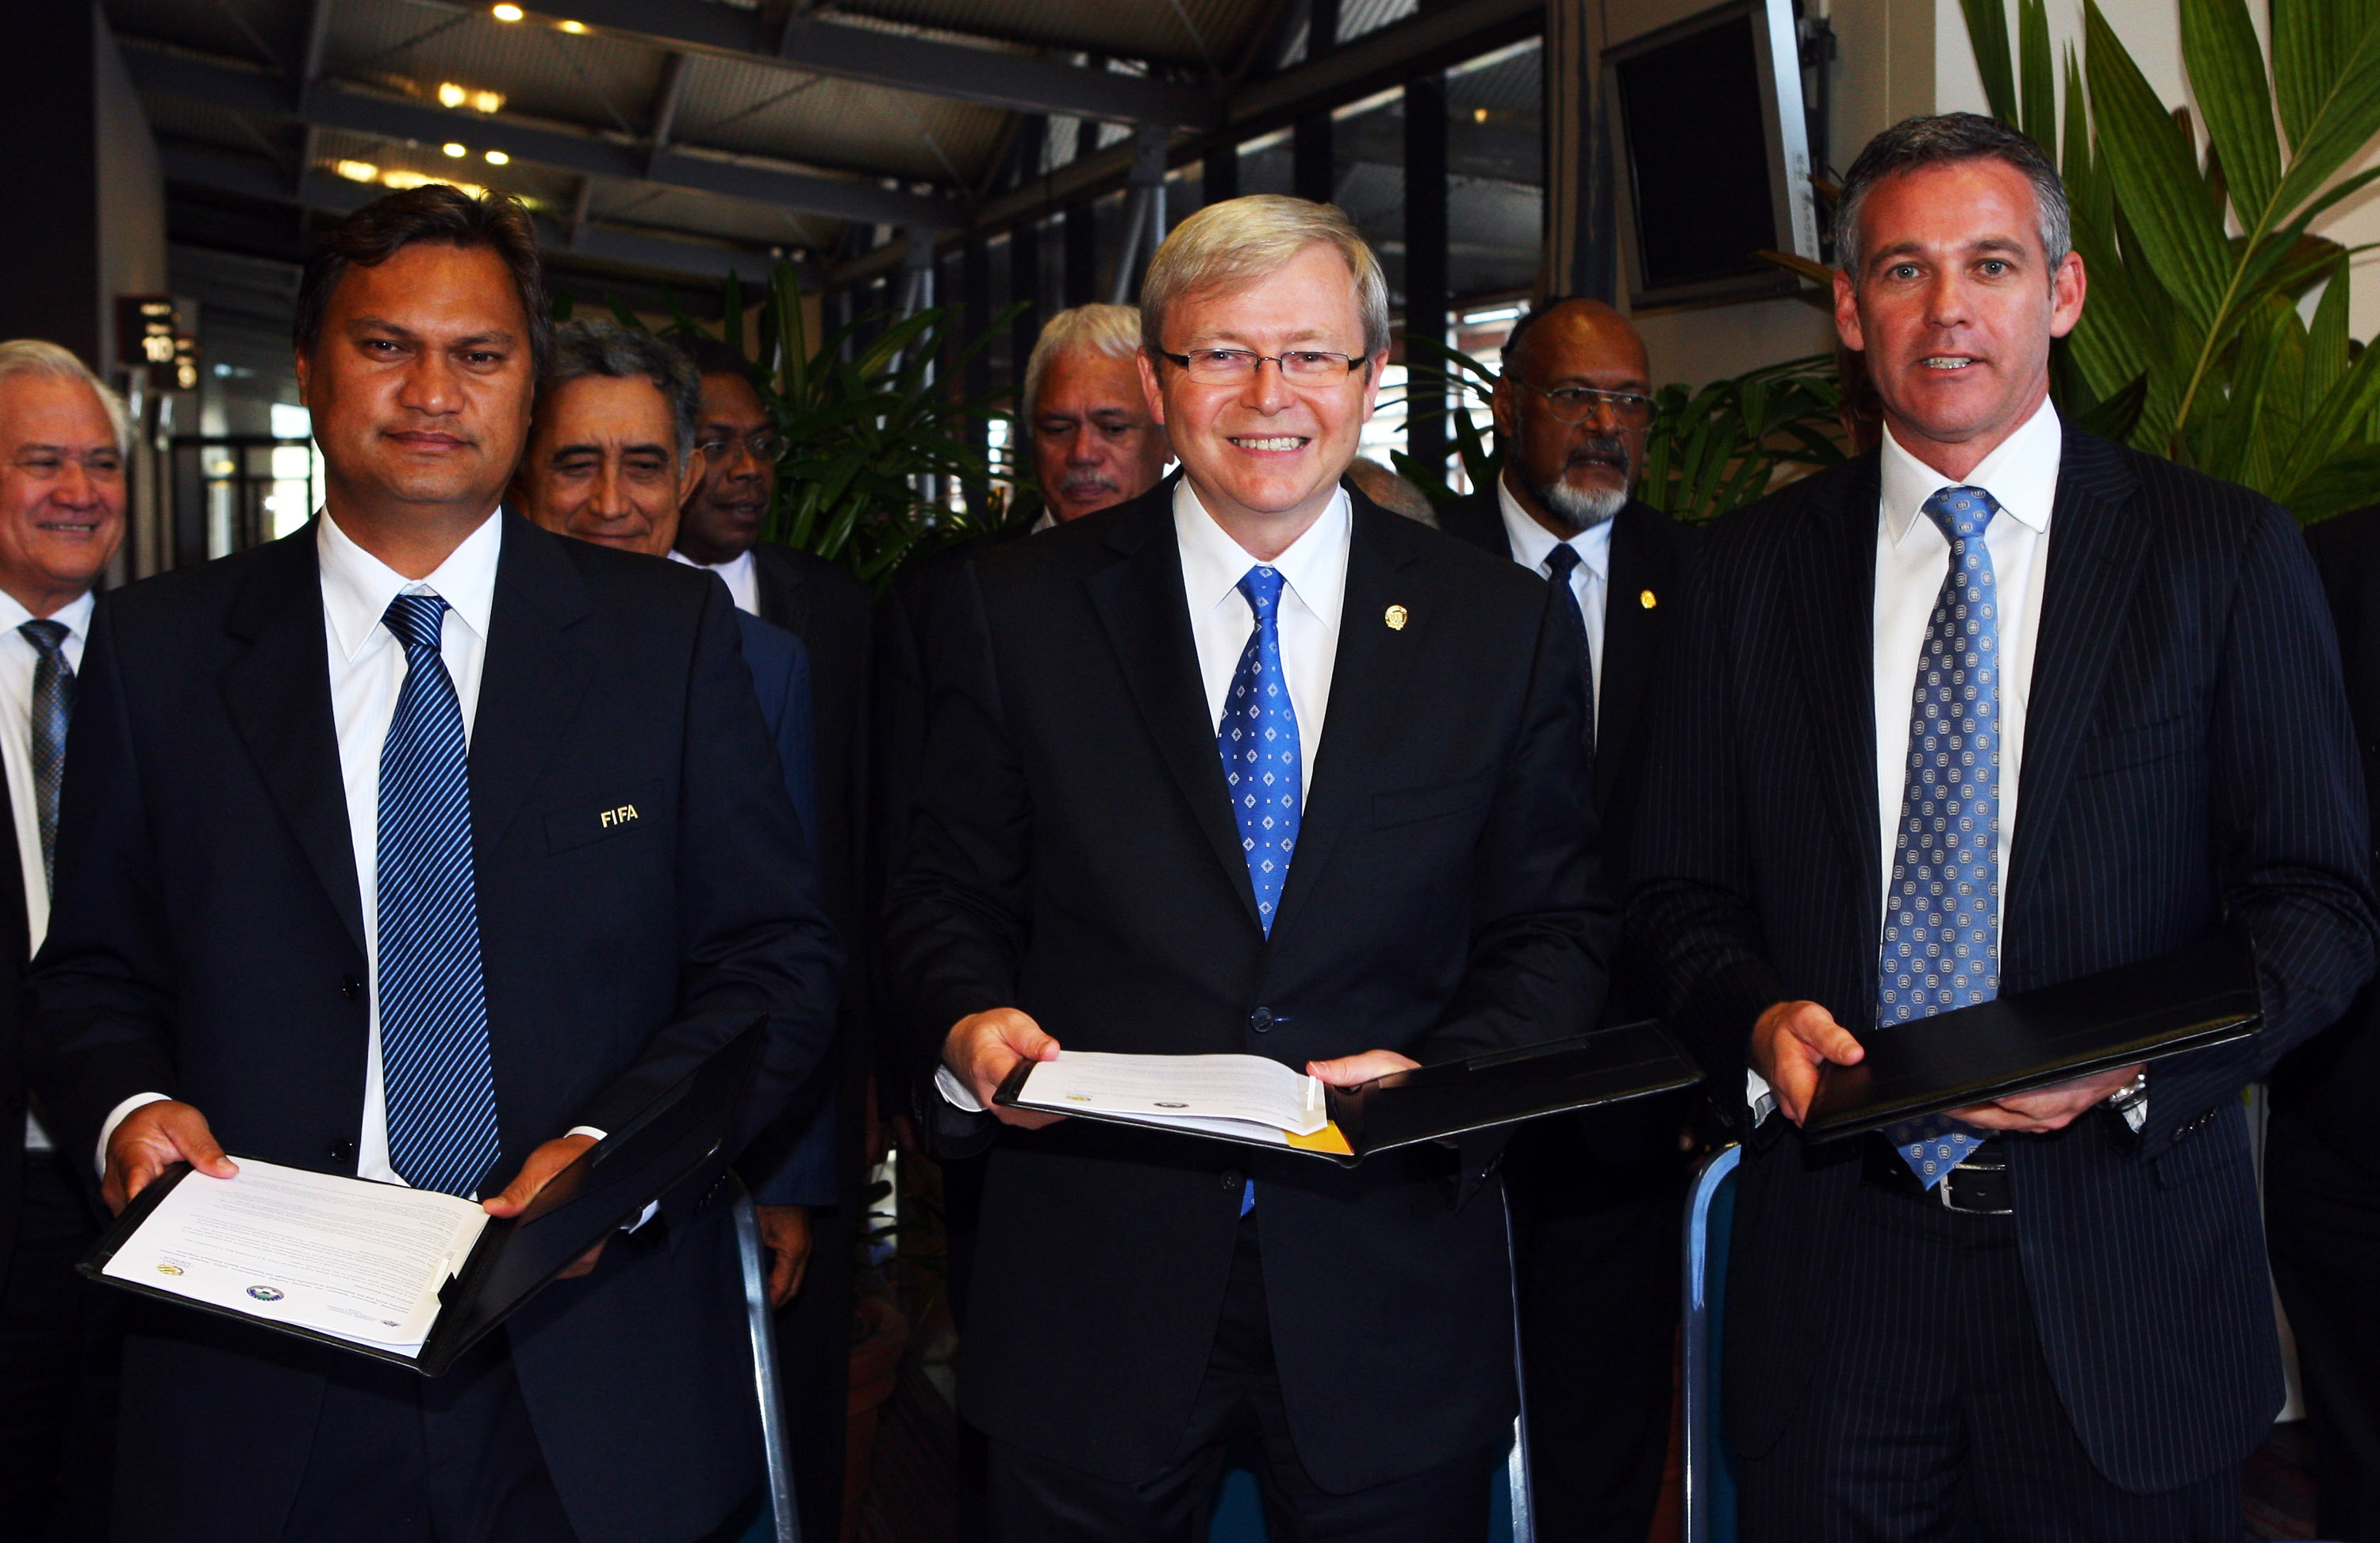 CAIRNS, AUSTRALIA - AUGUST 05:  (L-R) President of the Oceania Football Confederation Reynald Temarii, Australian Prime Minister Kevin Rudd and CEO of Football Australia Ben Buckley pose after signing an agreement at the Pacific Island Leaders Forum in th